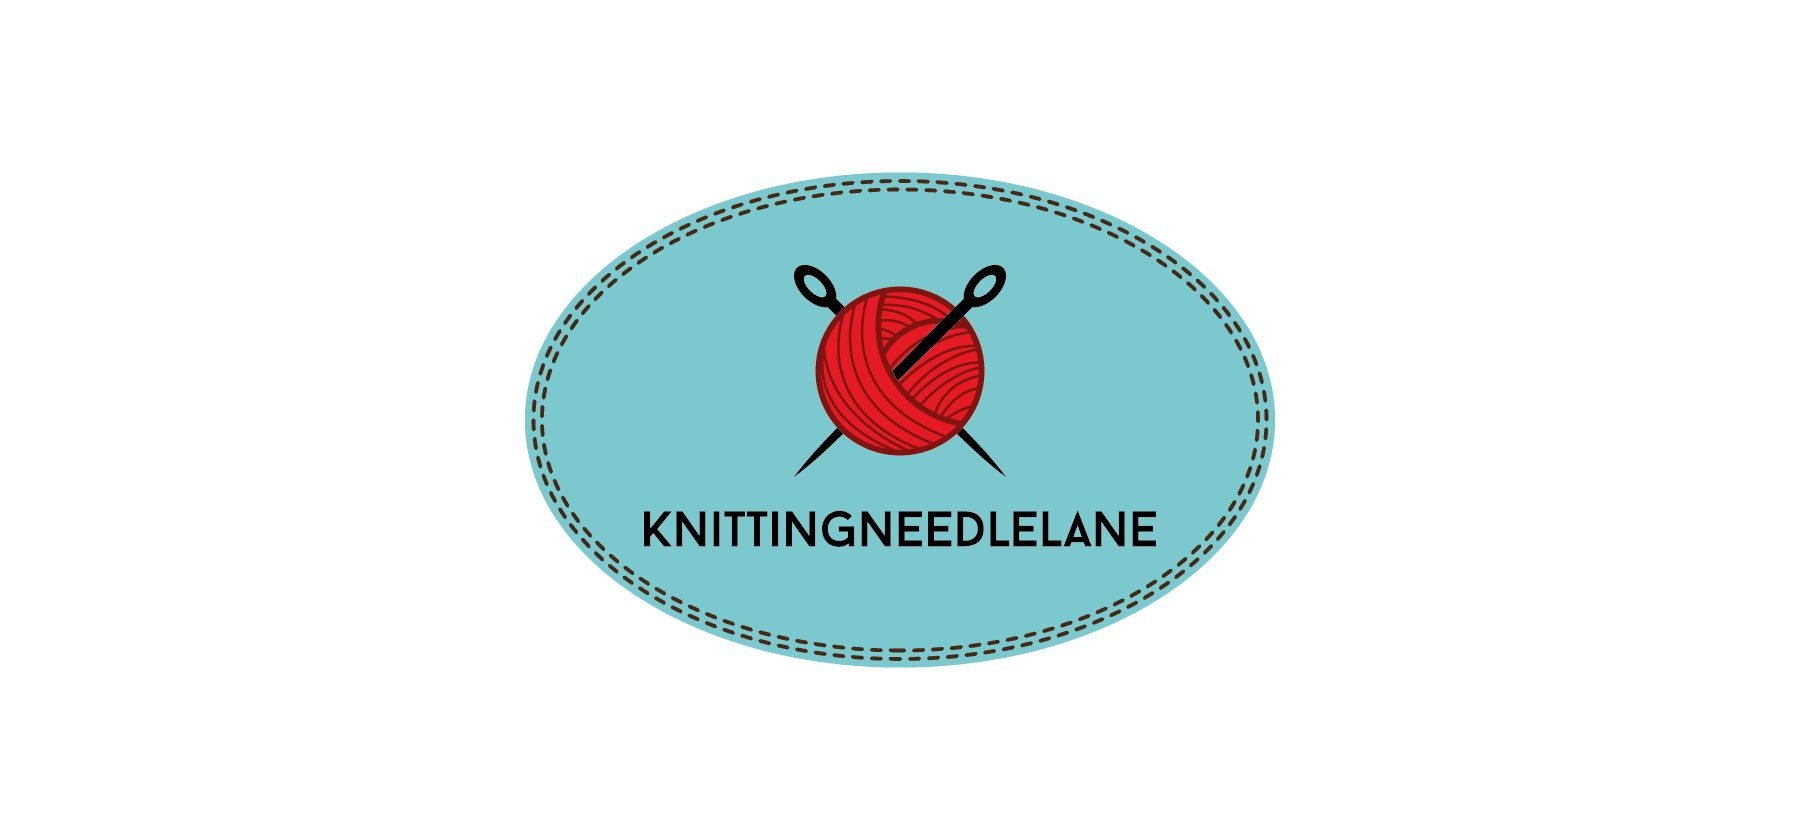 Hand picked stock to bring you the softest yarns and high quality products